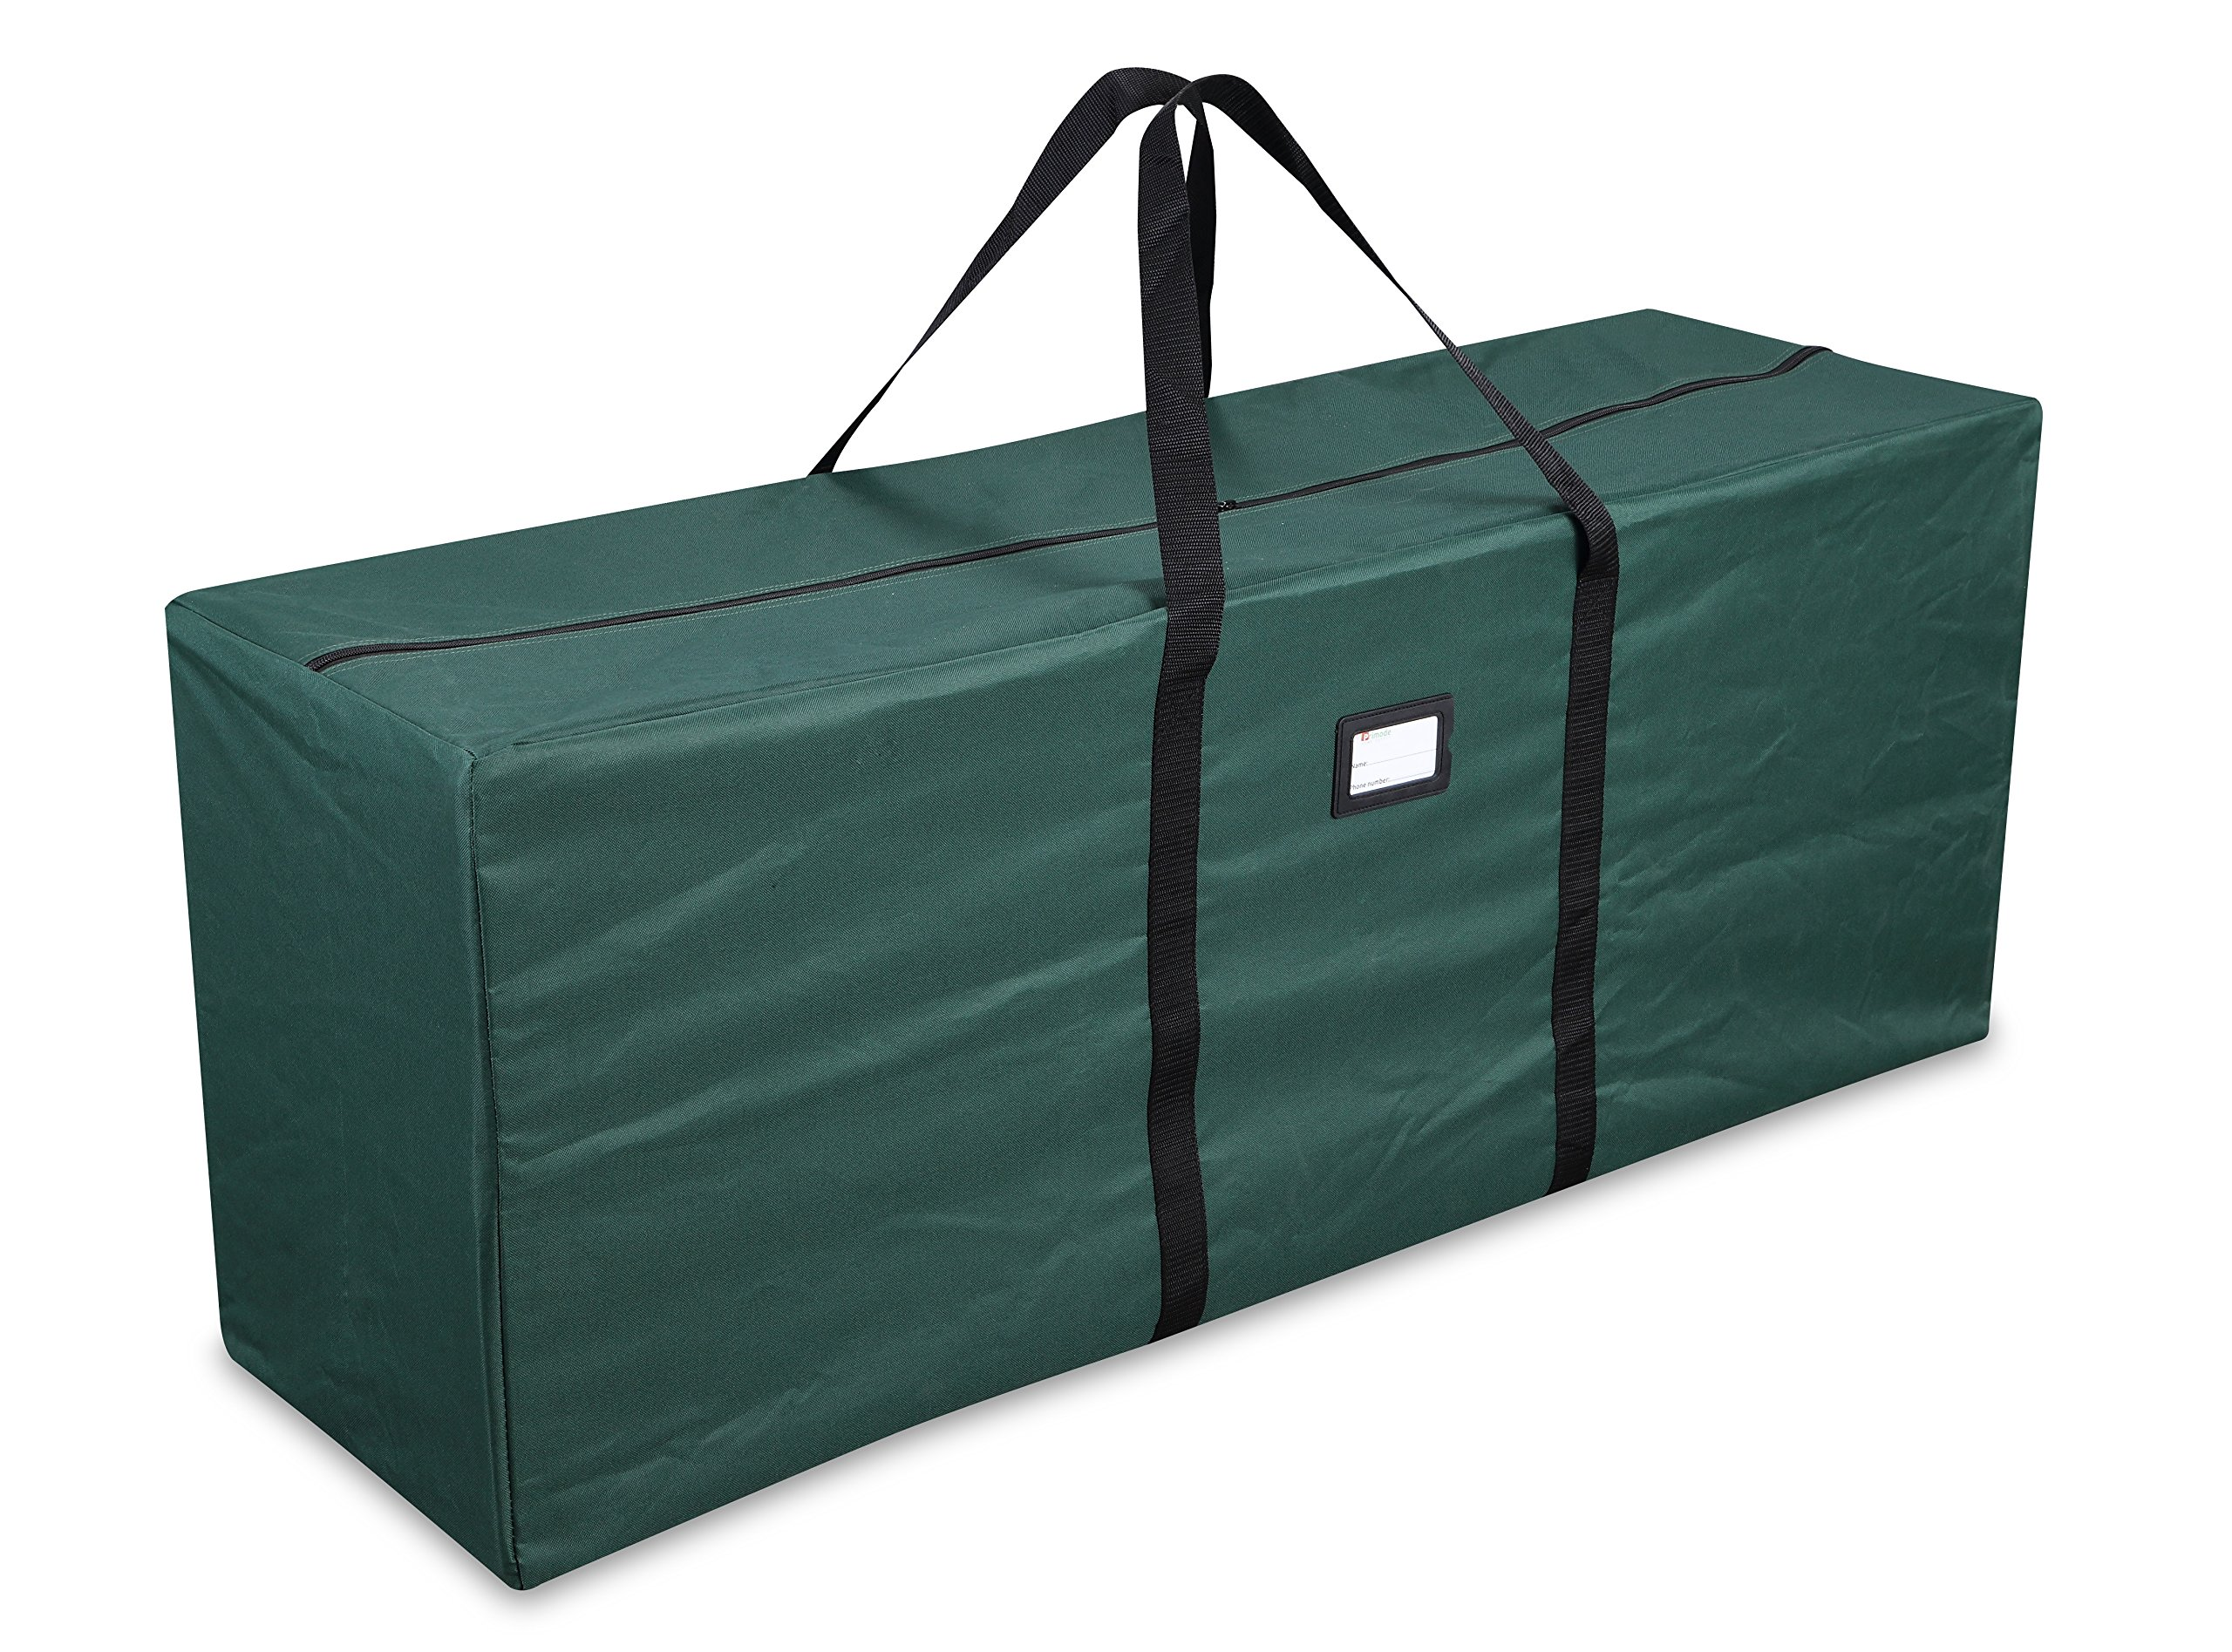 Primode Holiday Tree Storage Bag, Heavy Duty Storage Container, 20'' Height X 15'' Wide X 50'' Long (Green)